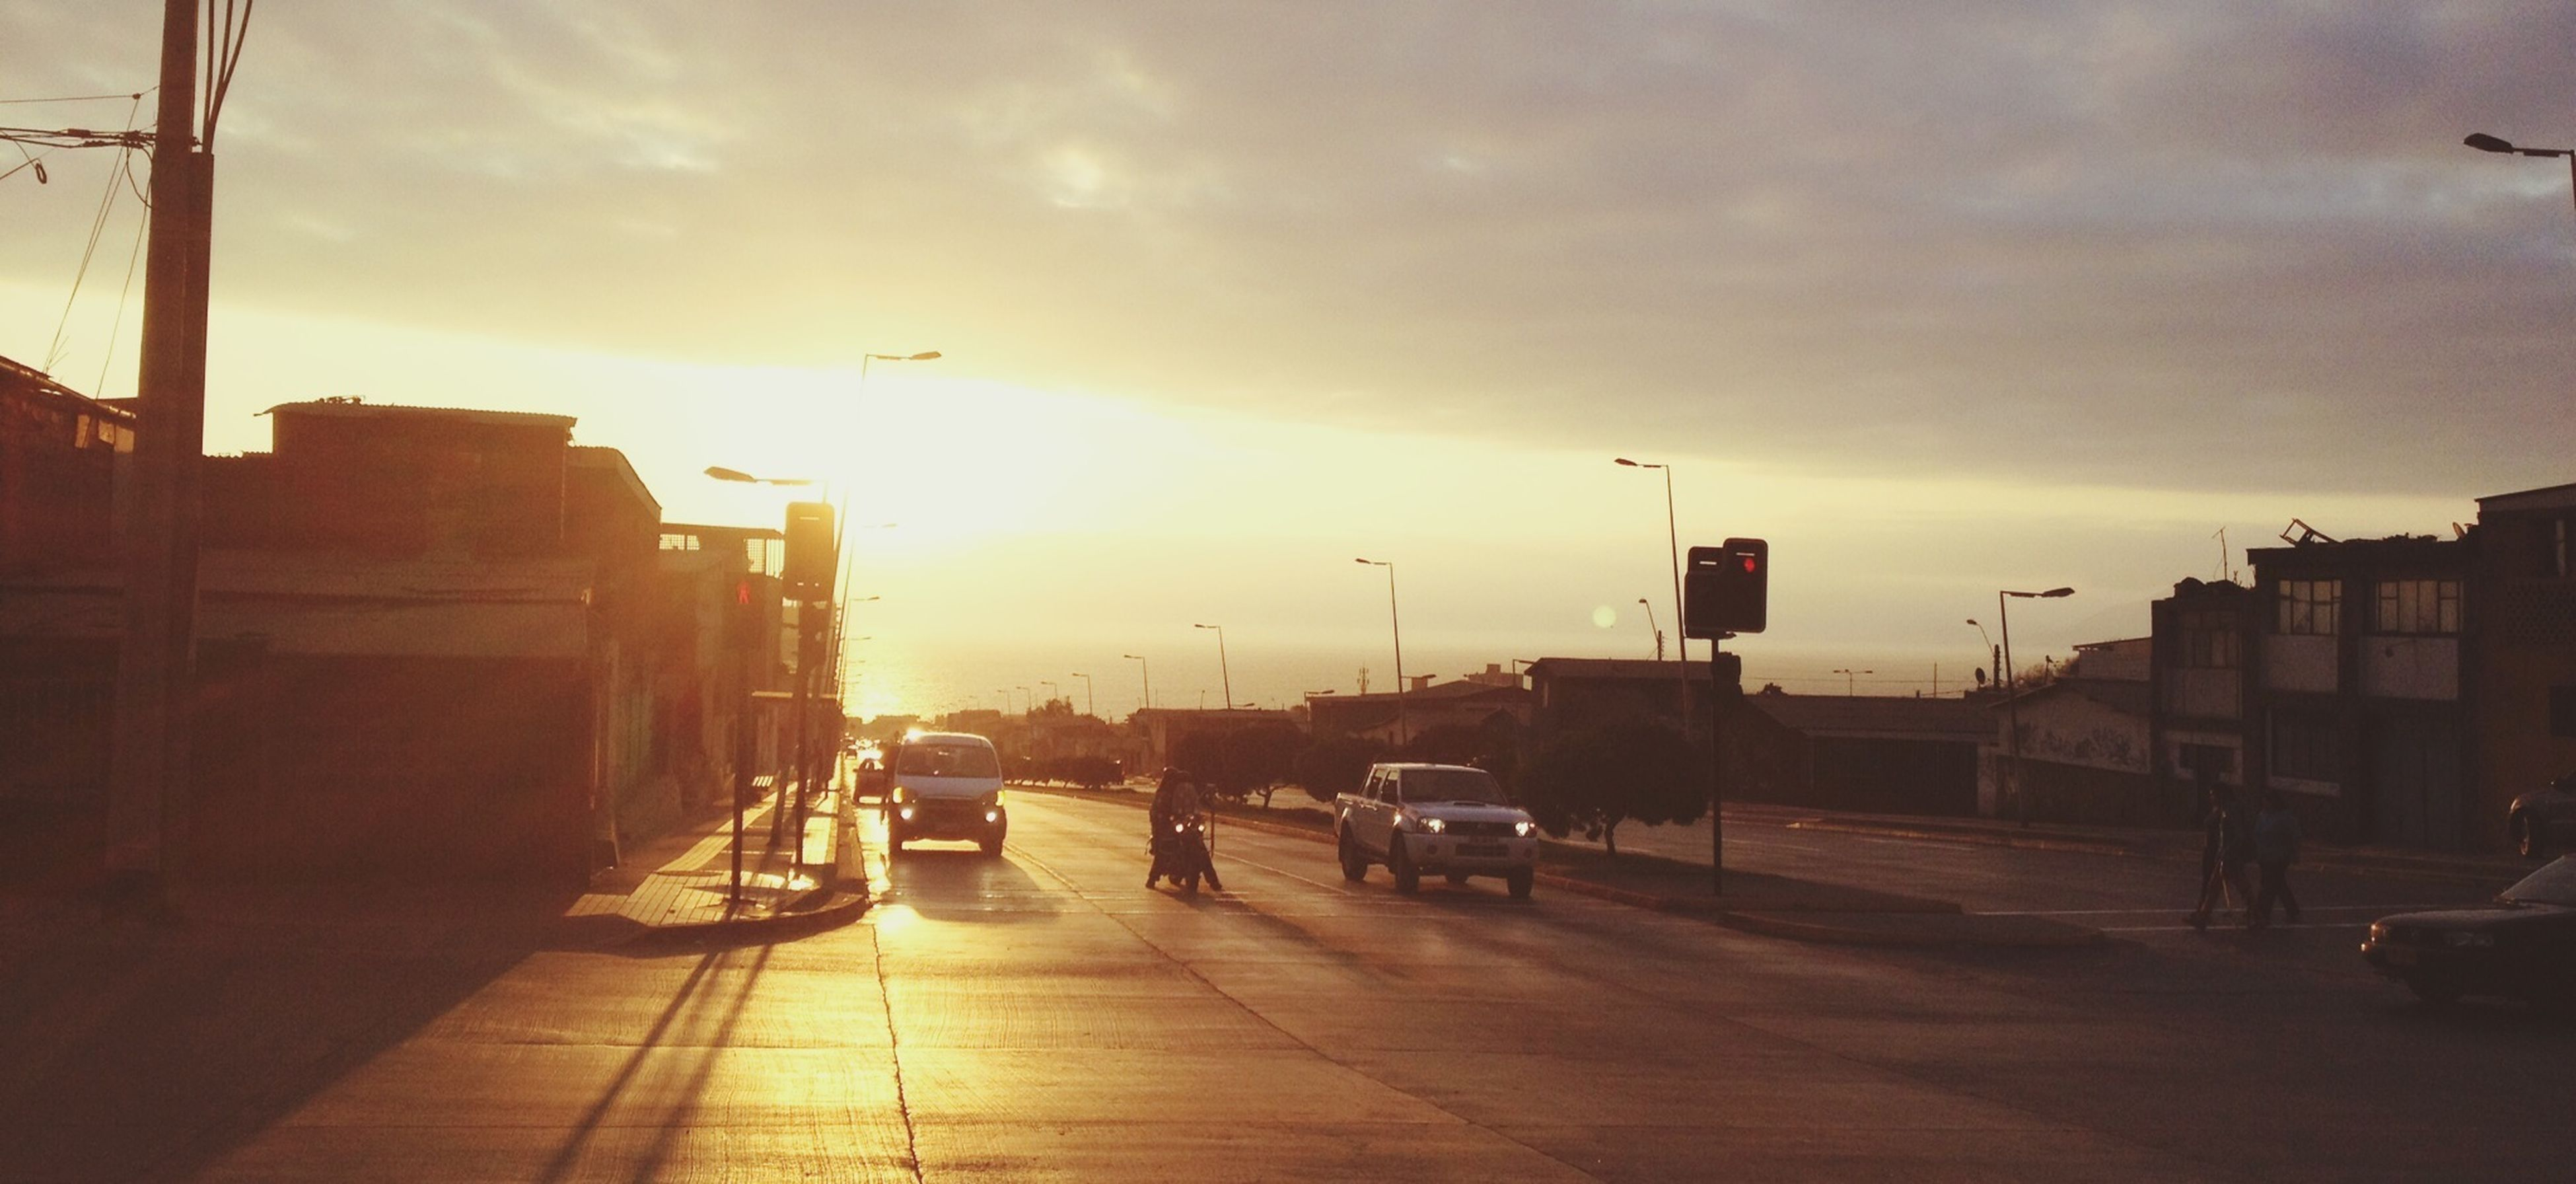 transportation, mode of transport, car, sunset, sky, land vehicle, building exterior, architecture, built structure, city, cloud - sky, street, the way forward, sun, sunlight, road, street light, on the move, incidental people, city life